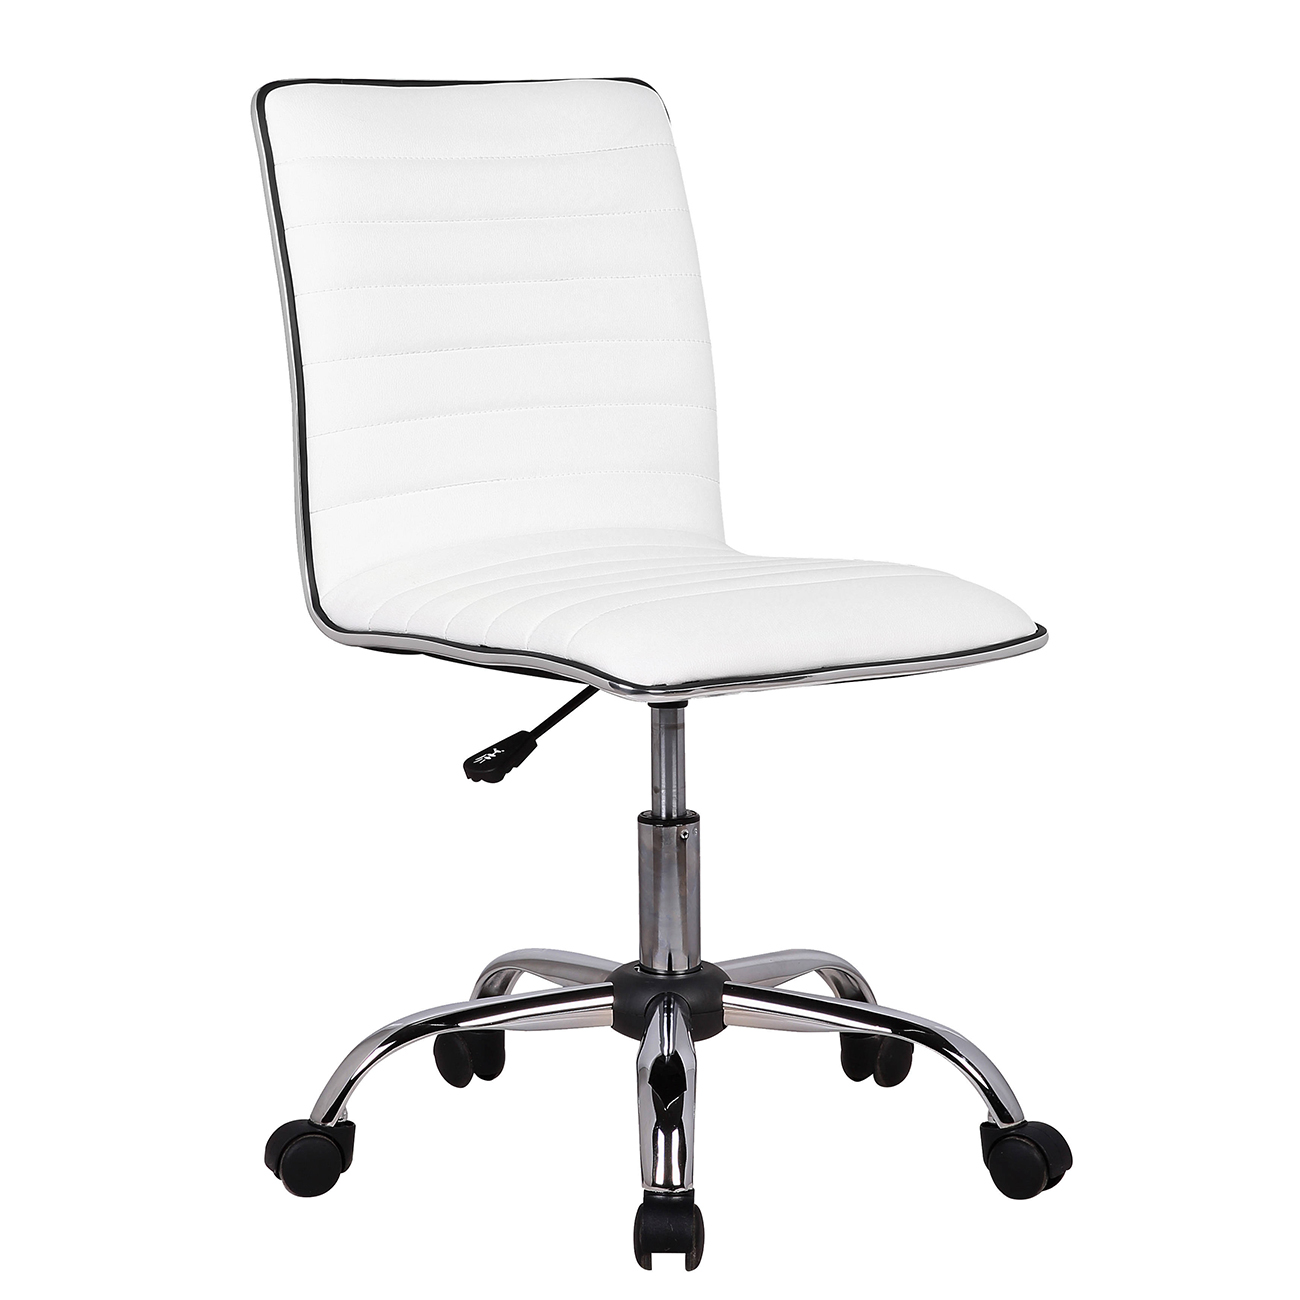 Beau Belleze Modern Ribbed Office Chair Armless Seat Desk Seat Swivel Task, White